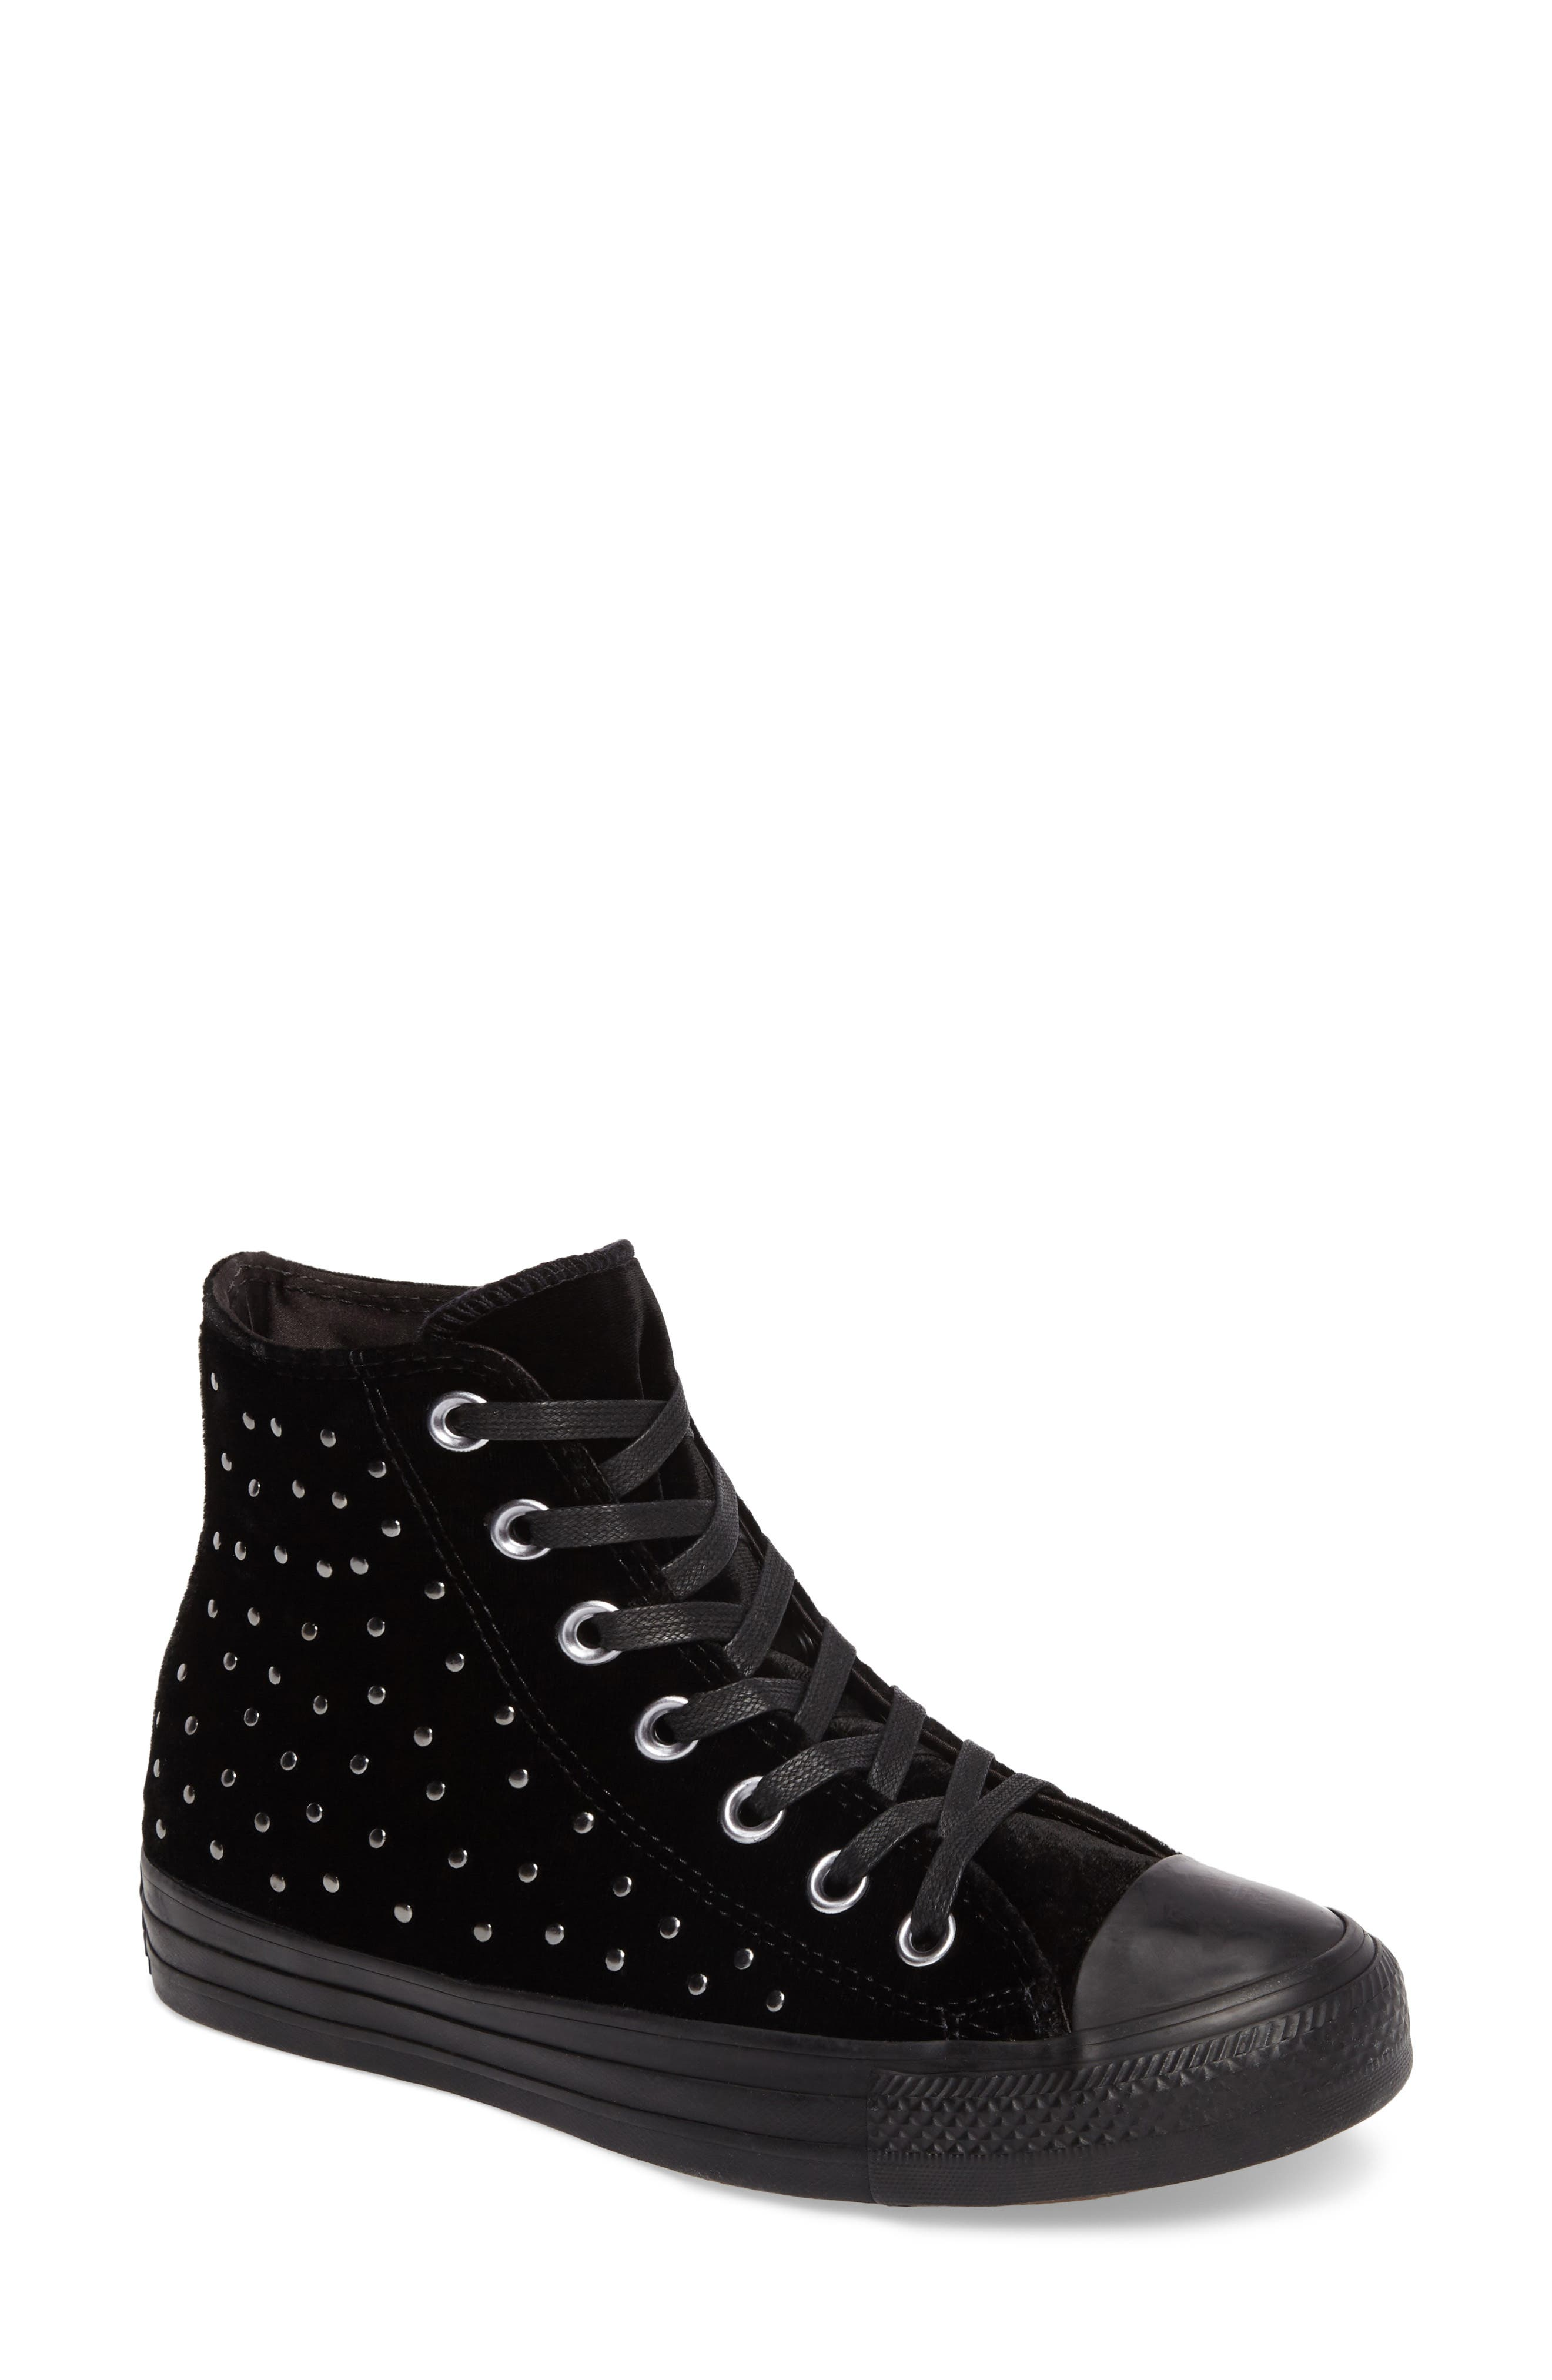 Star® Studded High Top Sneakers